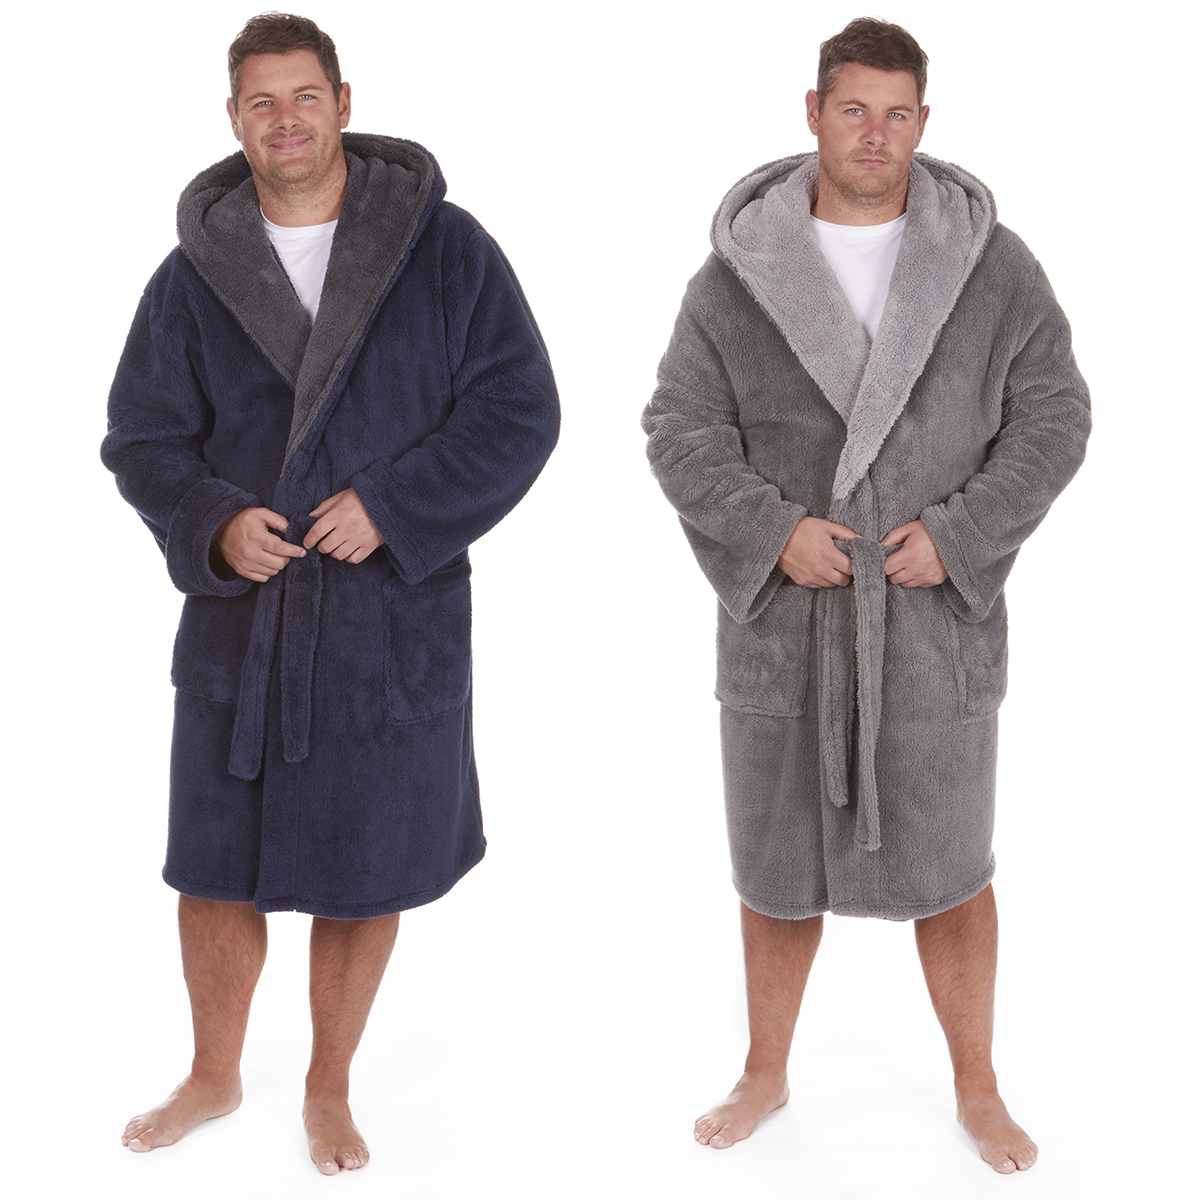 Mens Dressing Gown With Hood - Home Decorating Ideas & Interior Design